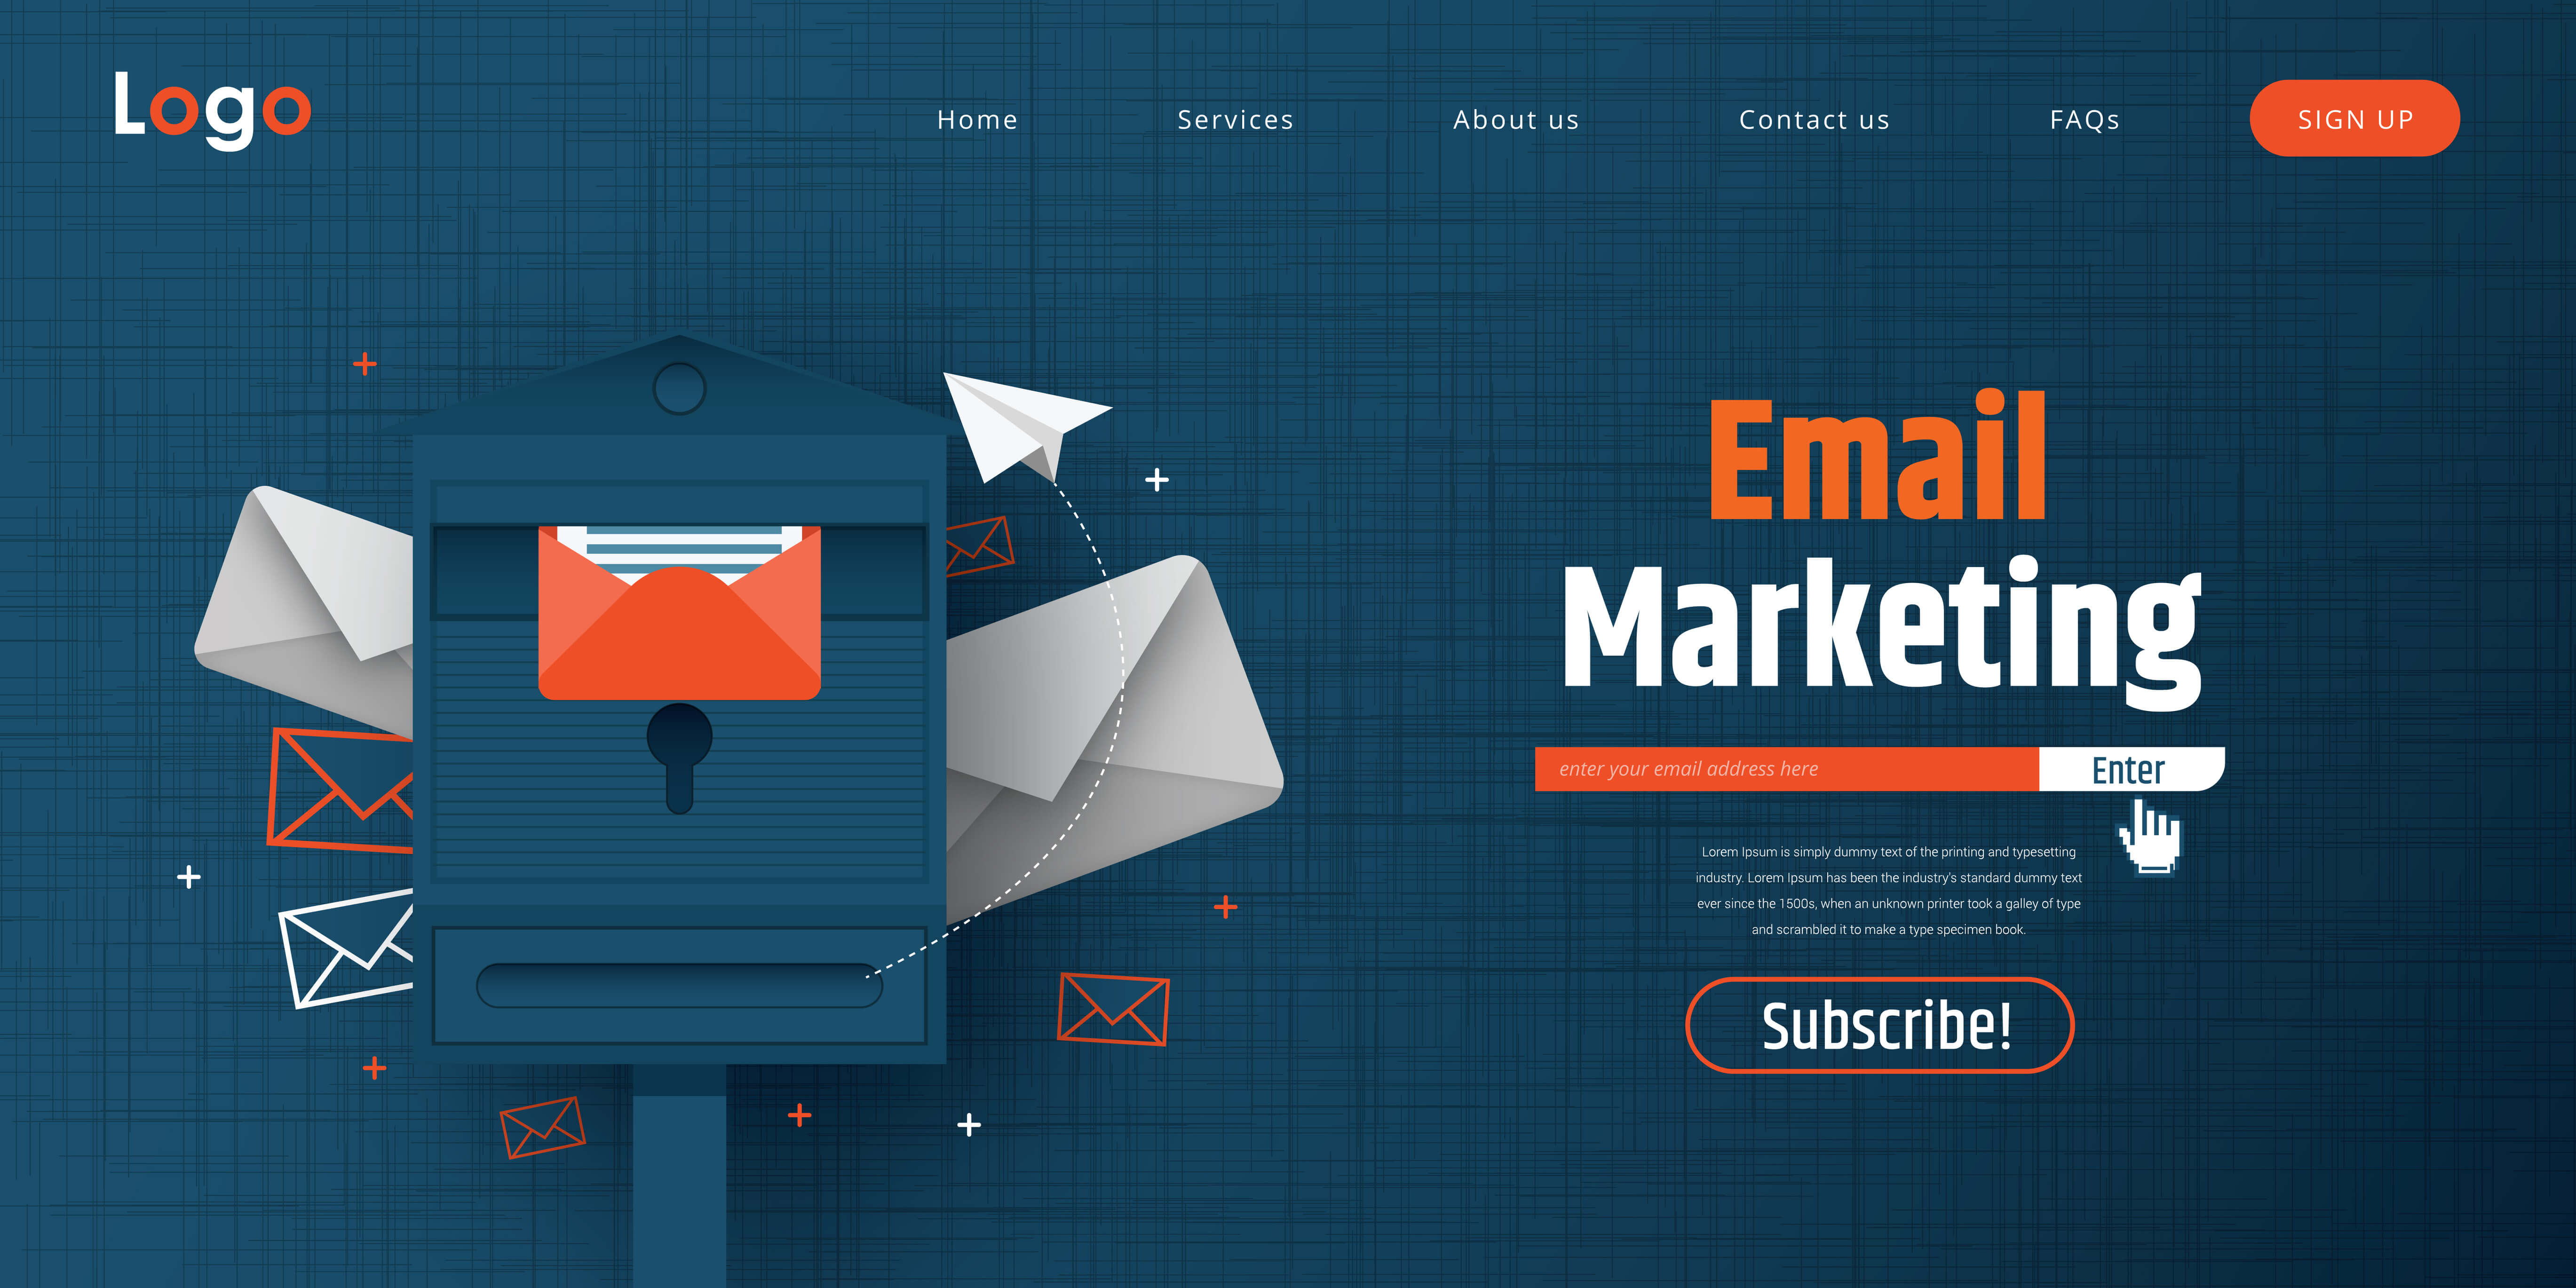 Sign up for email marketing newsletter example website.